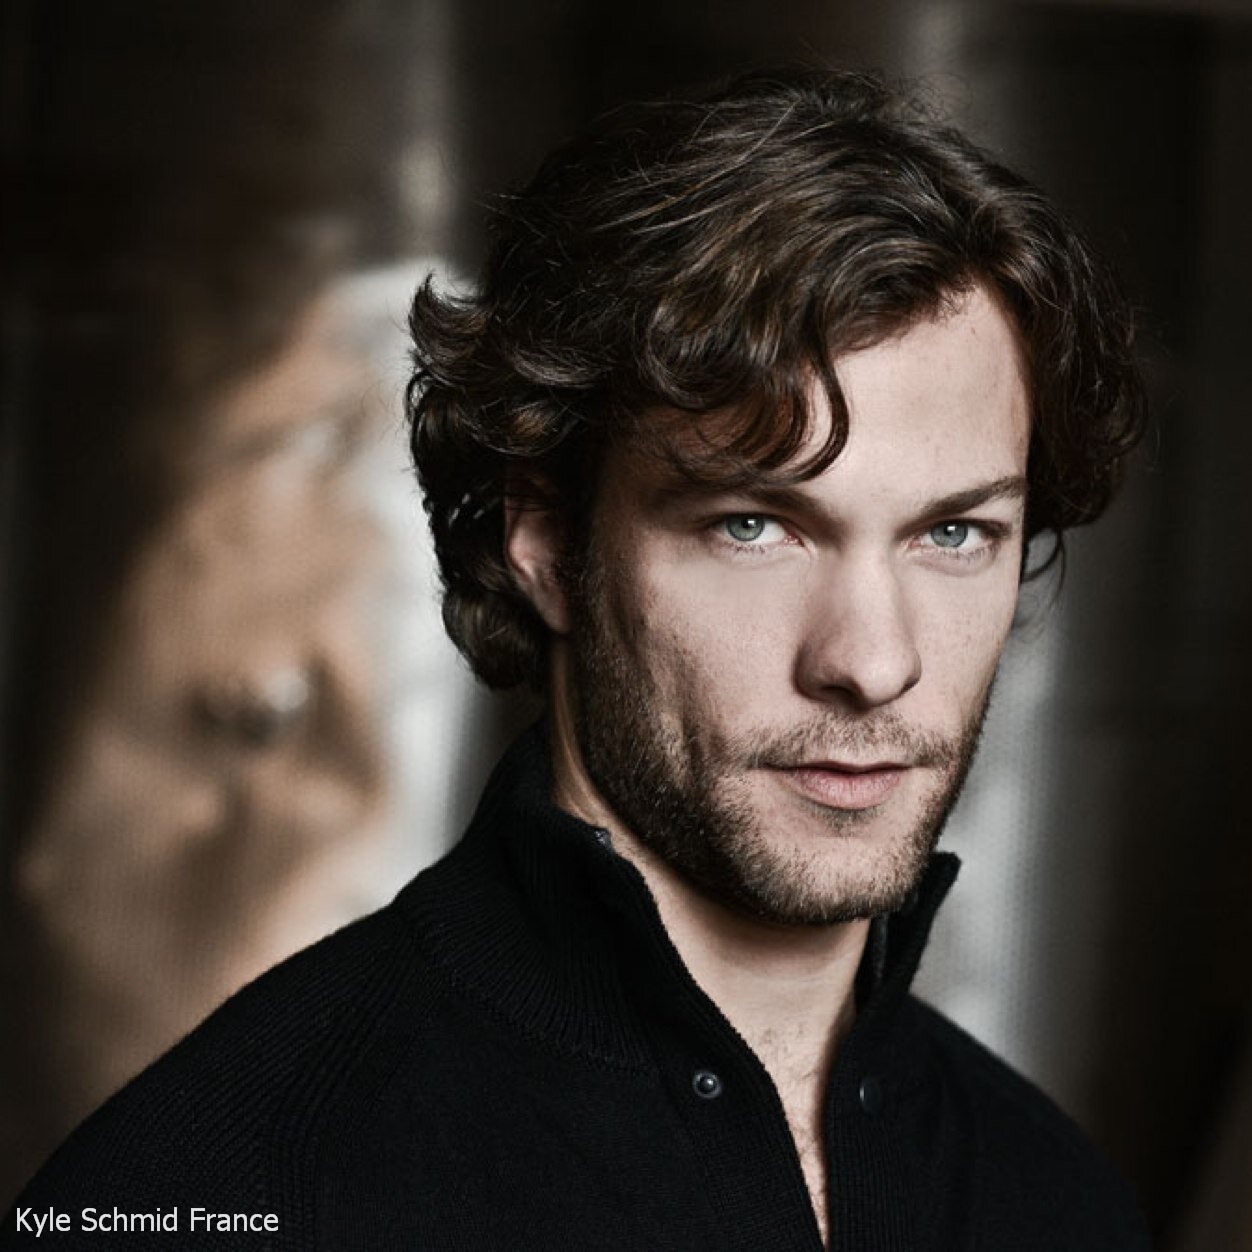 Kyle Schmid nude (68 foto and video), Sexy, Fappening, Feet, butt 2019